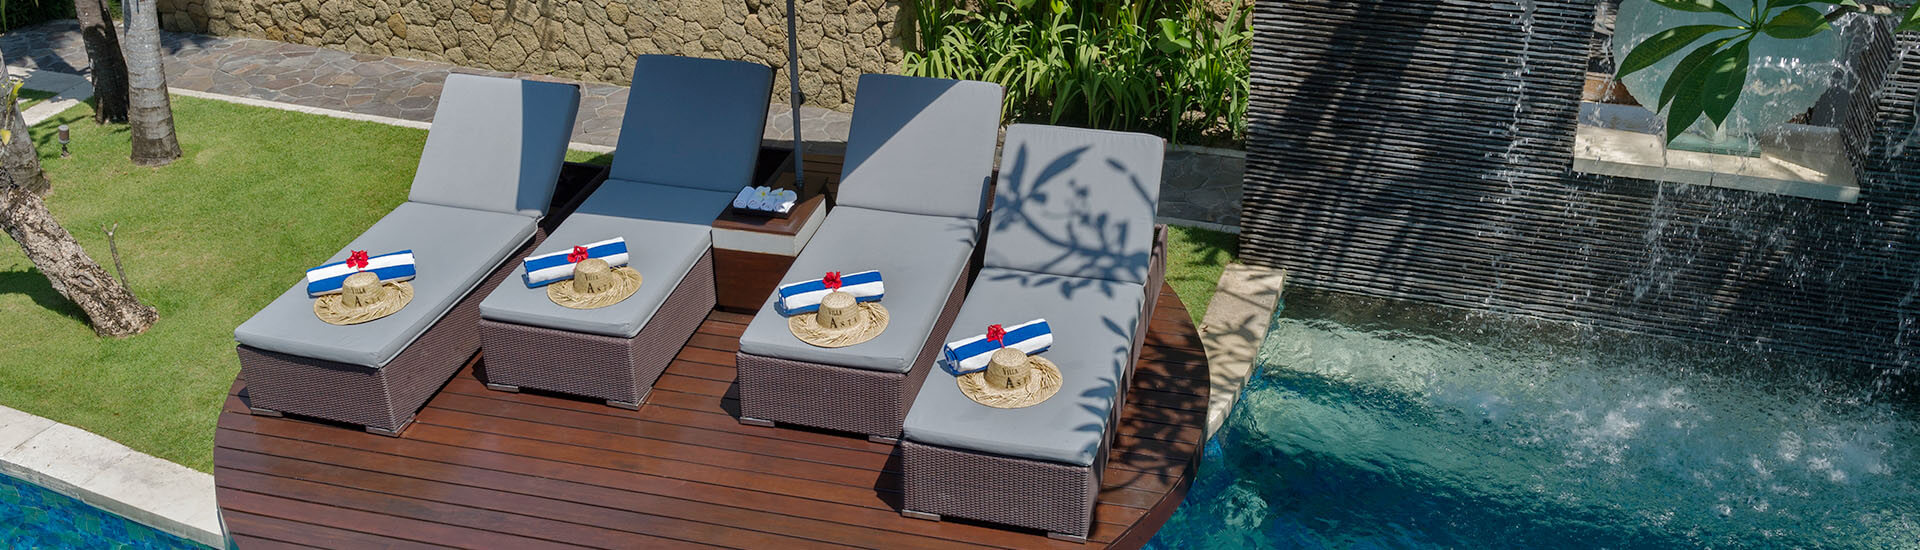 Villa Asta - Deck chairs from above